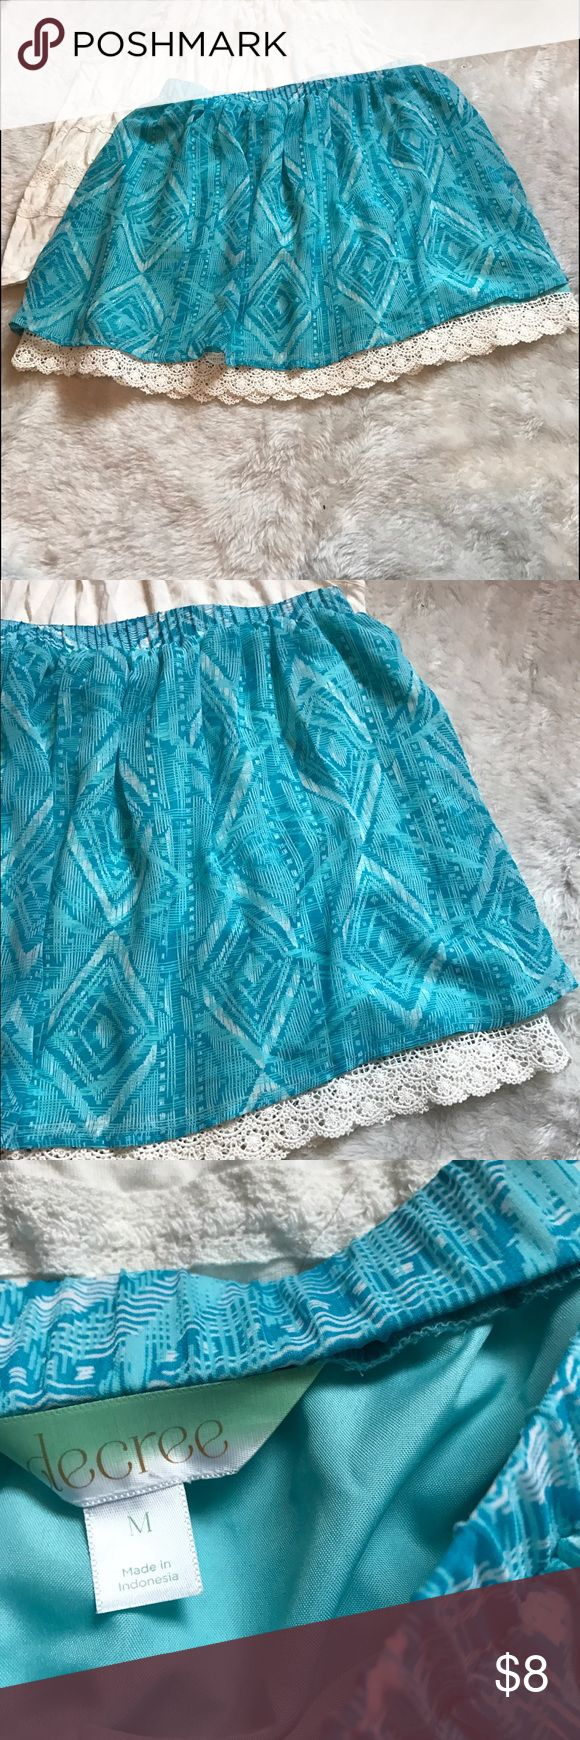 Aztec Elastic Waist Crochet Lace Trimmed Skirt M Like new elastic waisted ladies Aztec blue turquoise Crochet Lace trimmed skirt. Springy. Light and airy. Little lighter than pictures show. 🚫No trades ✅Reasonable offers submitted though offer button accepted. 🚭Smoke free home💌Laundered before shipped degree Skirts